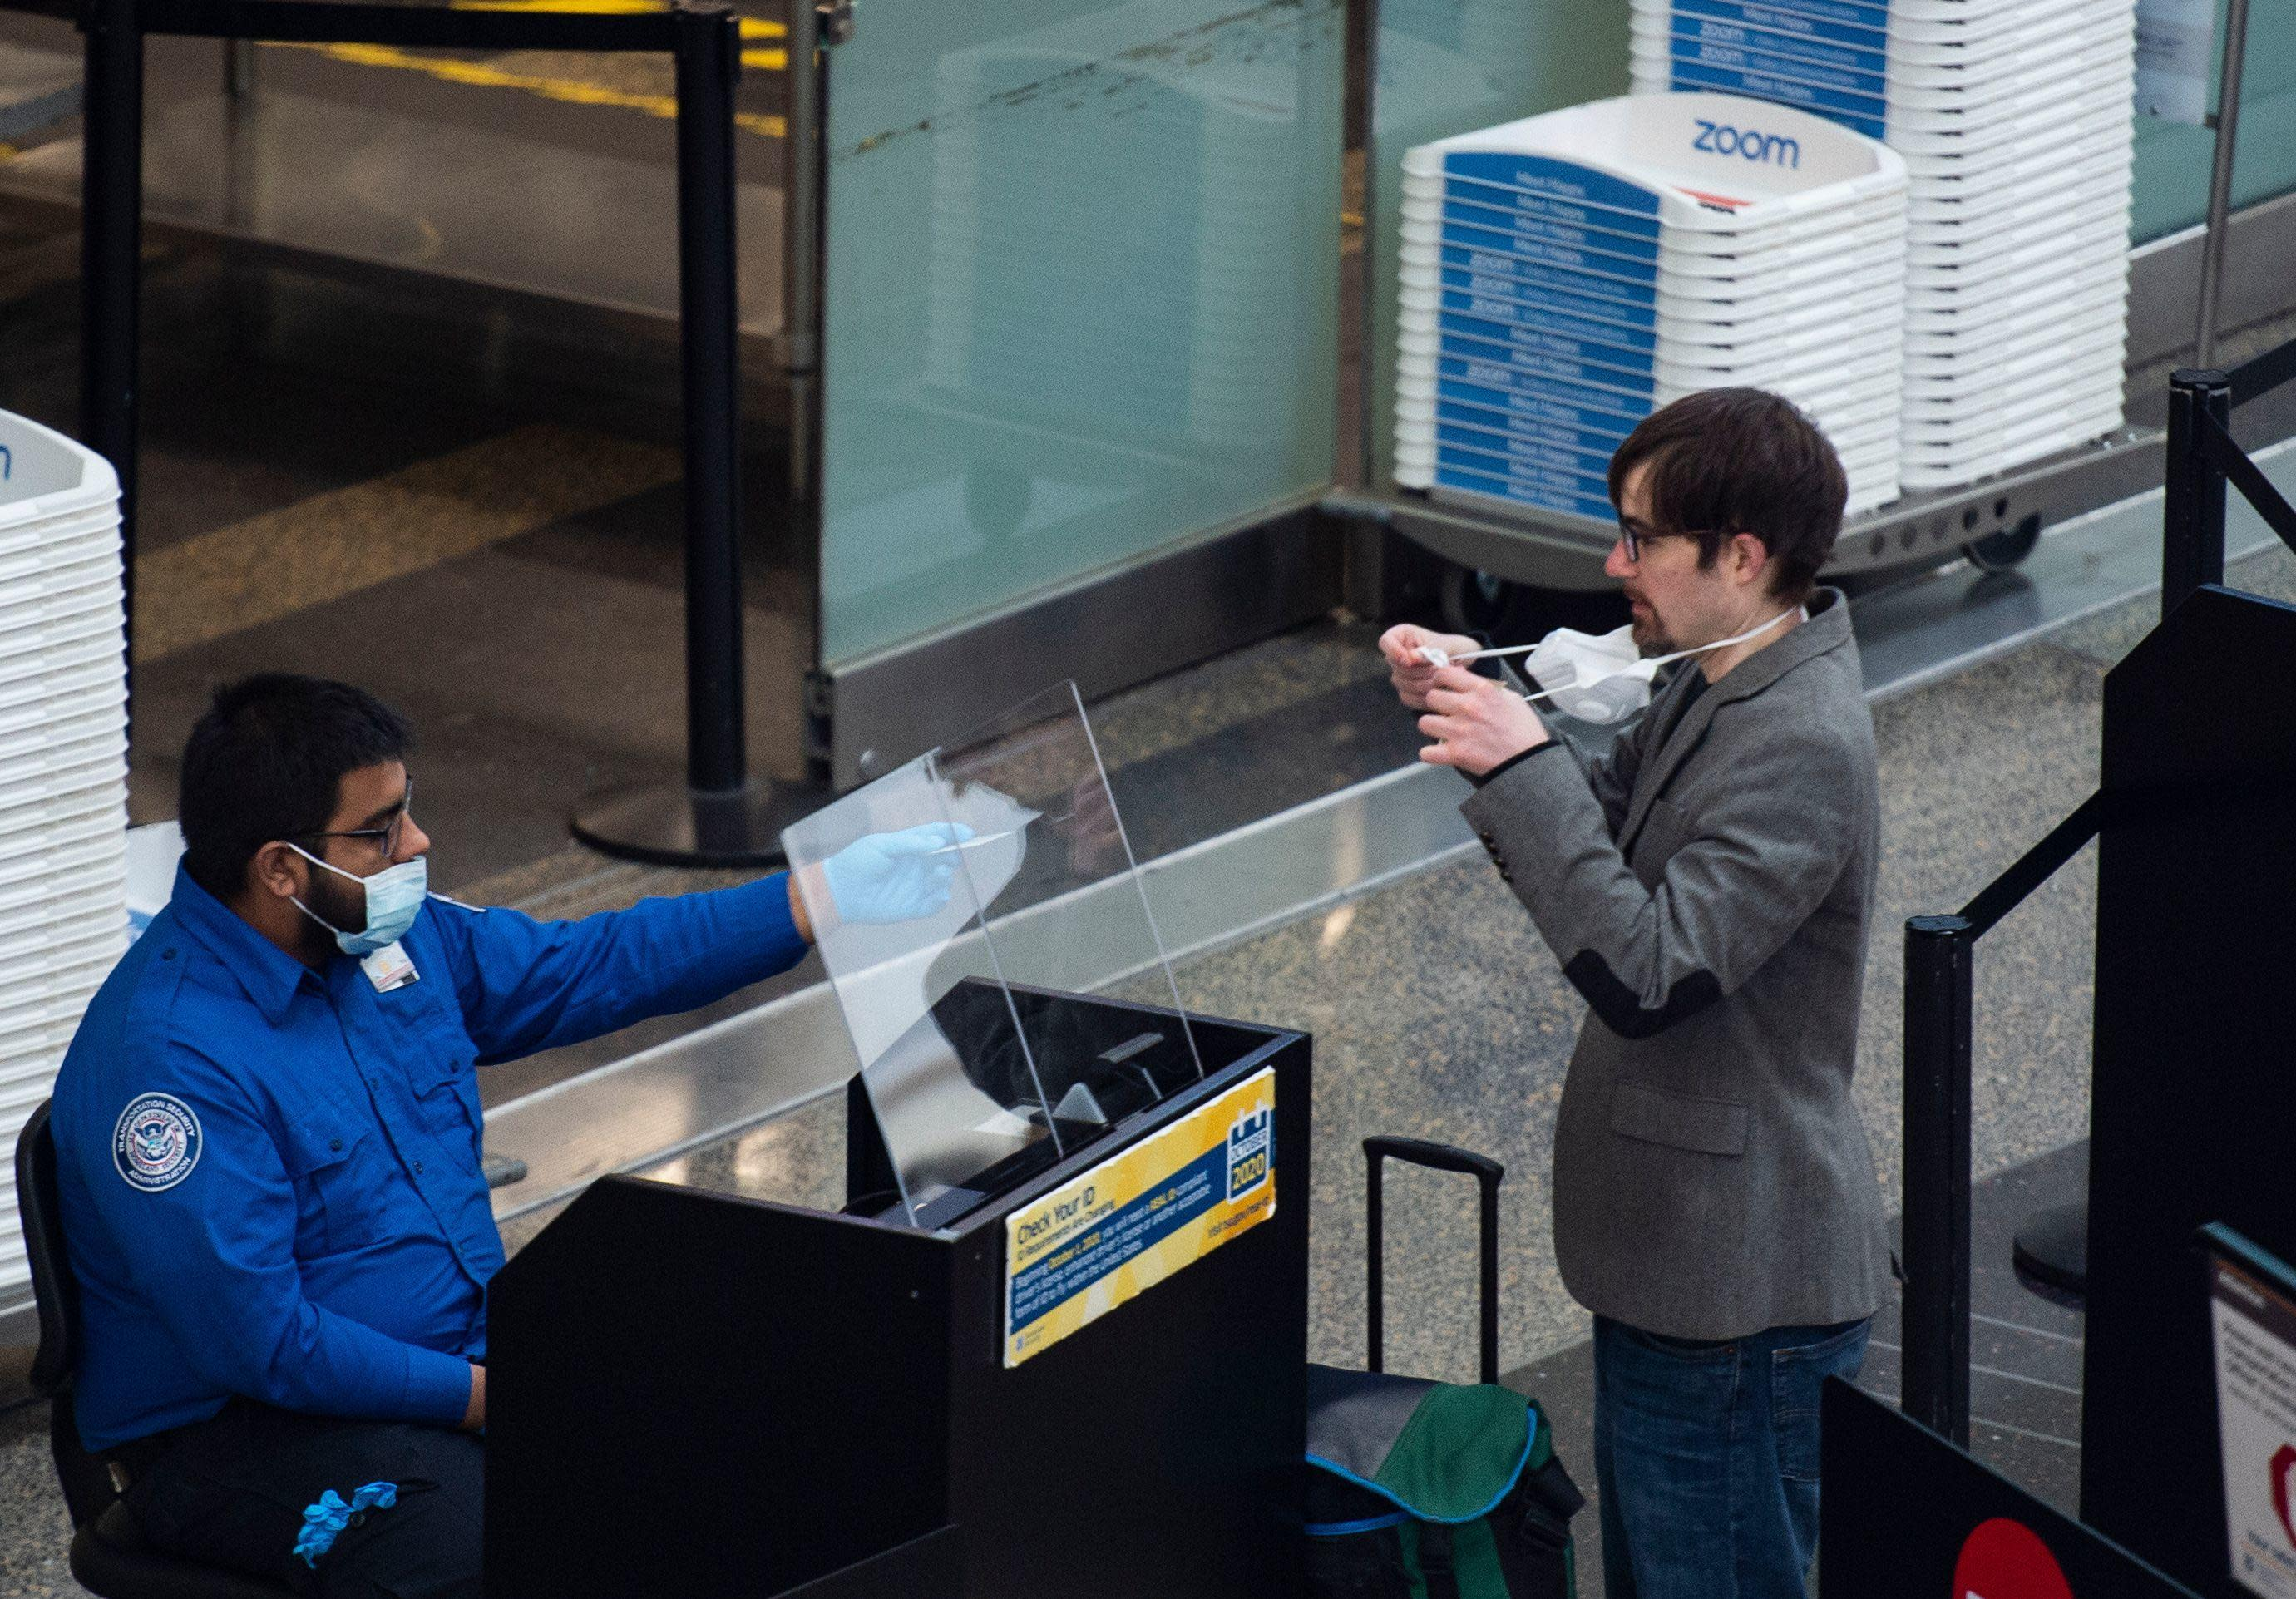 TSA changes security procedures in response to COVID-19